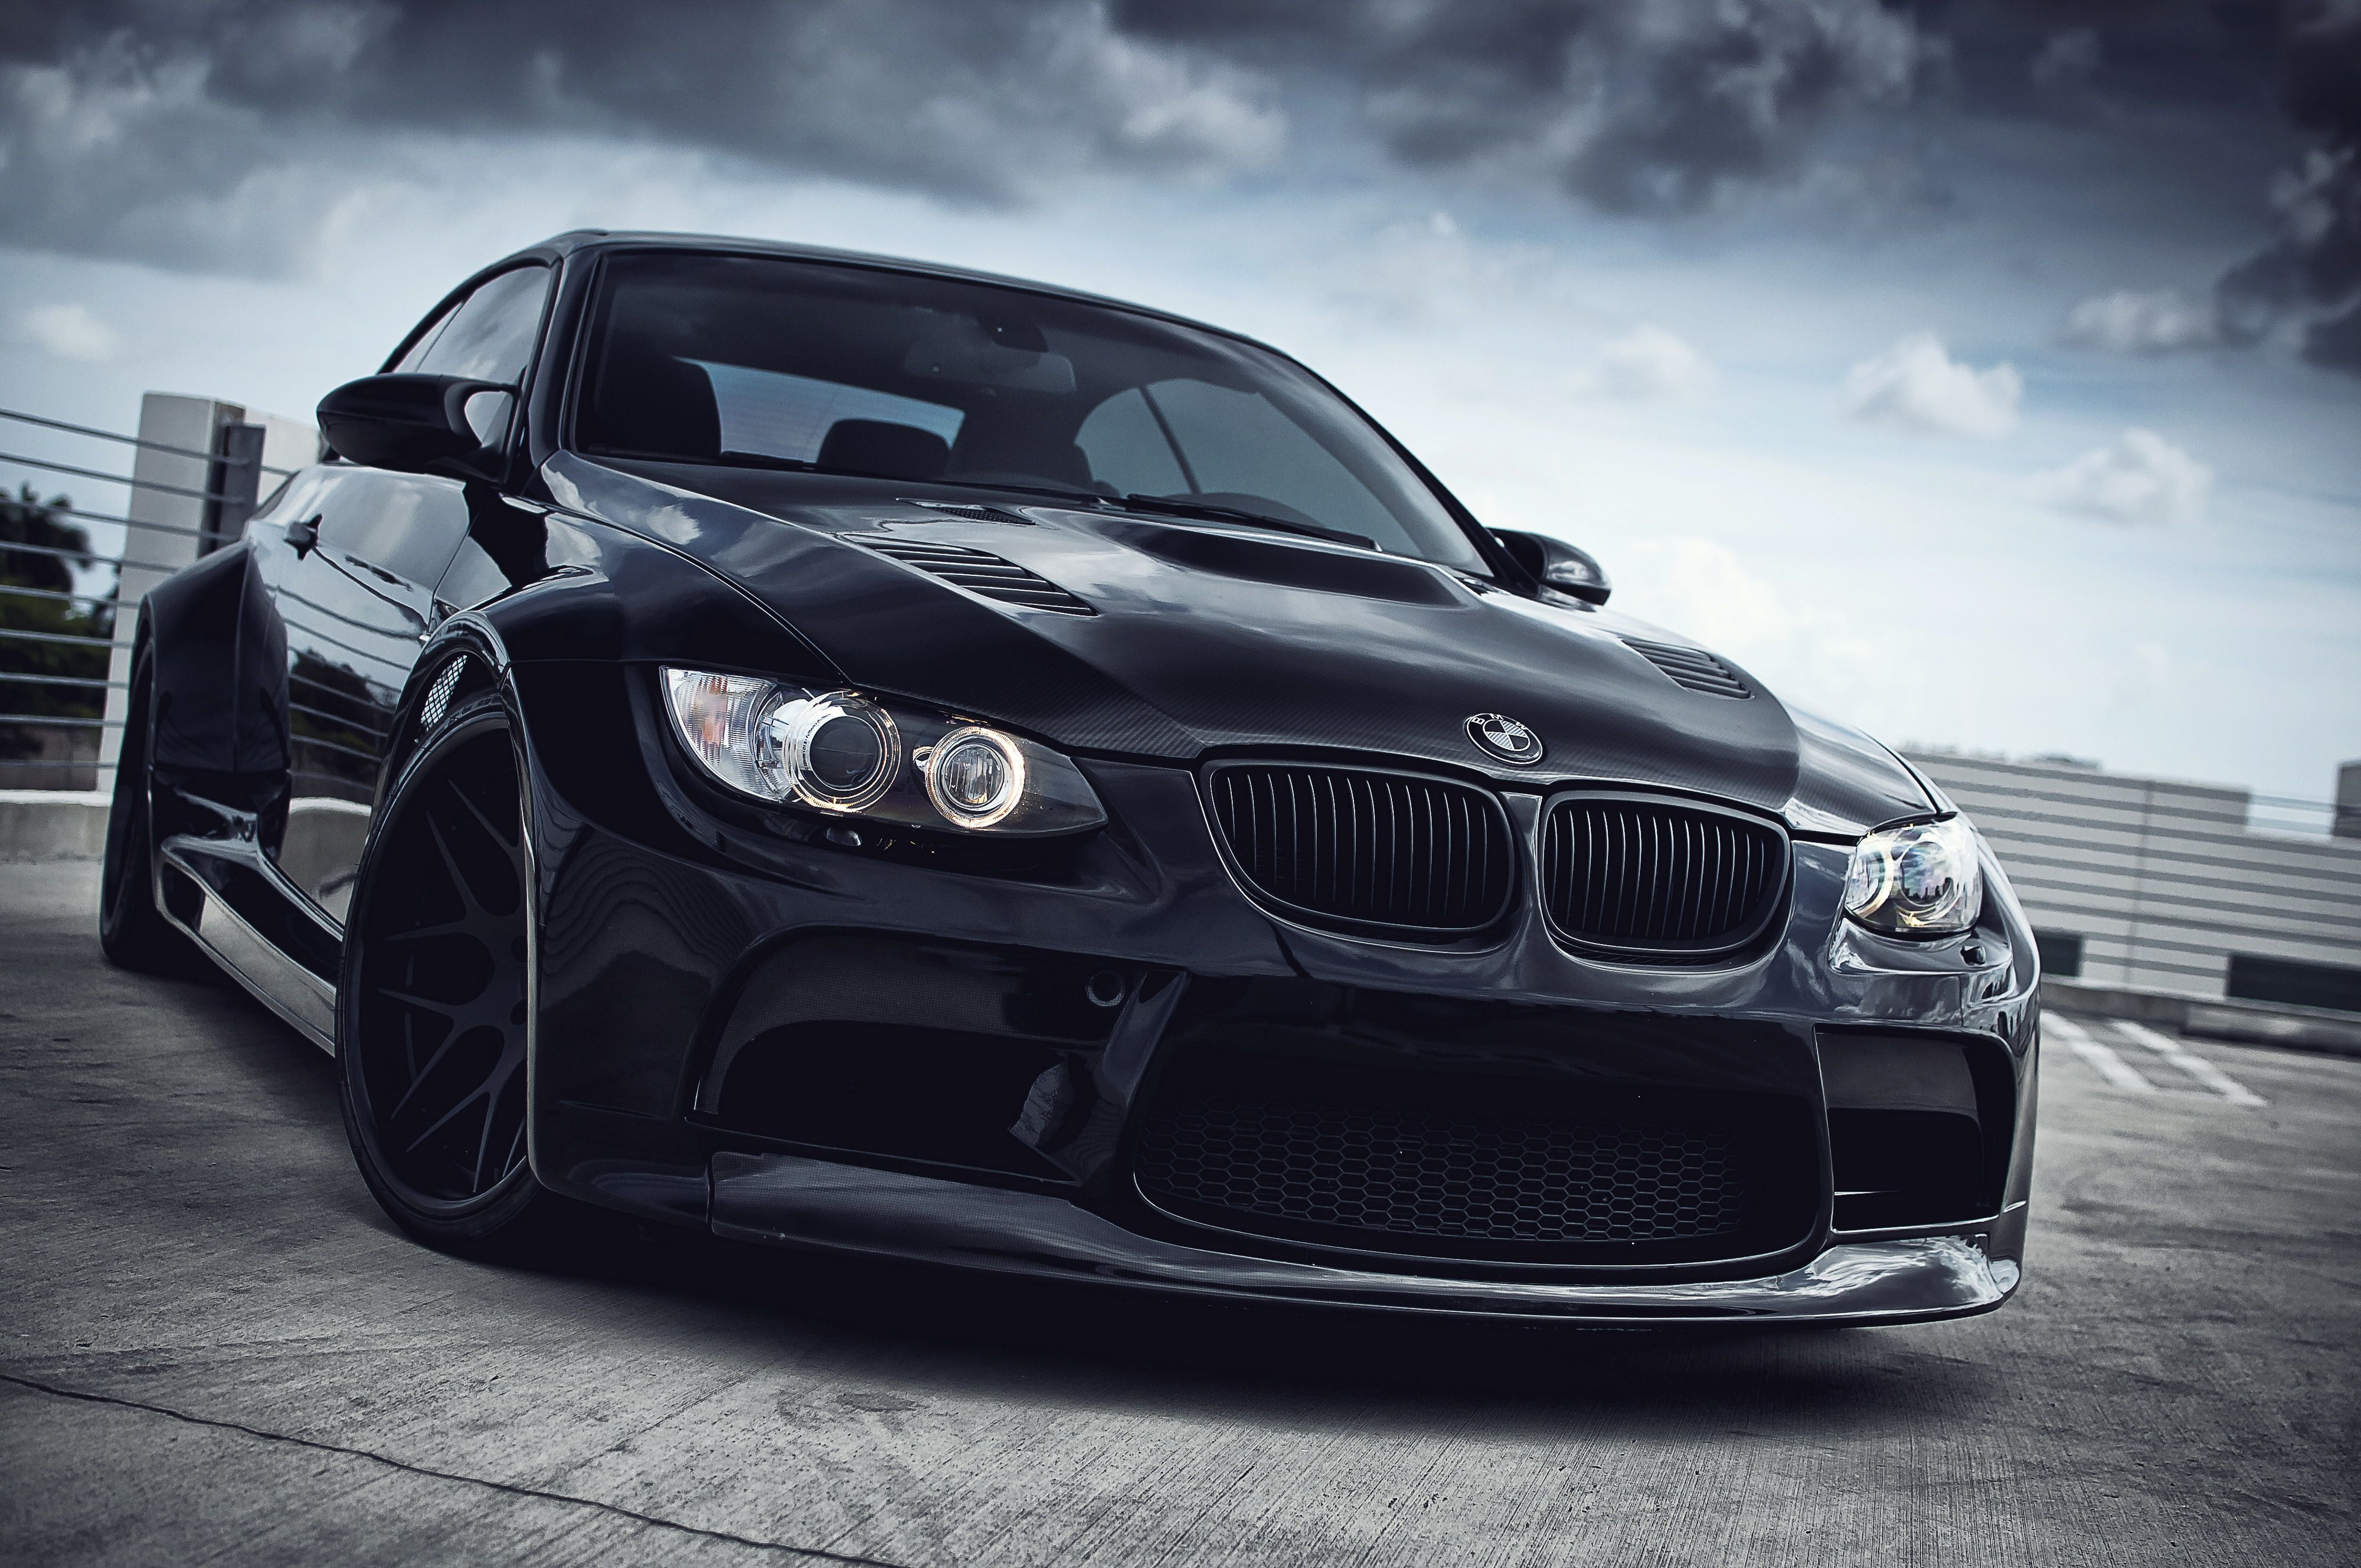 Explore bmw hd wallpapers 1920x1080 on wallpapersafari find more items about bmw m3 hd wallpaper bmw wallpaper widescreen bmw hd wallpapers 1080p. 4k Bmw Wallpapers Top Free 4k Bmw Backgrounds Wallpaperaccess